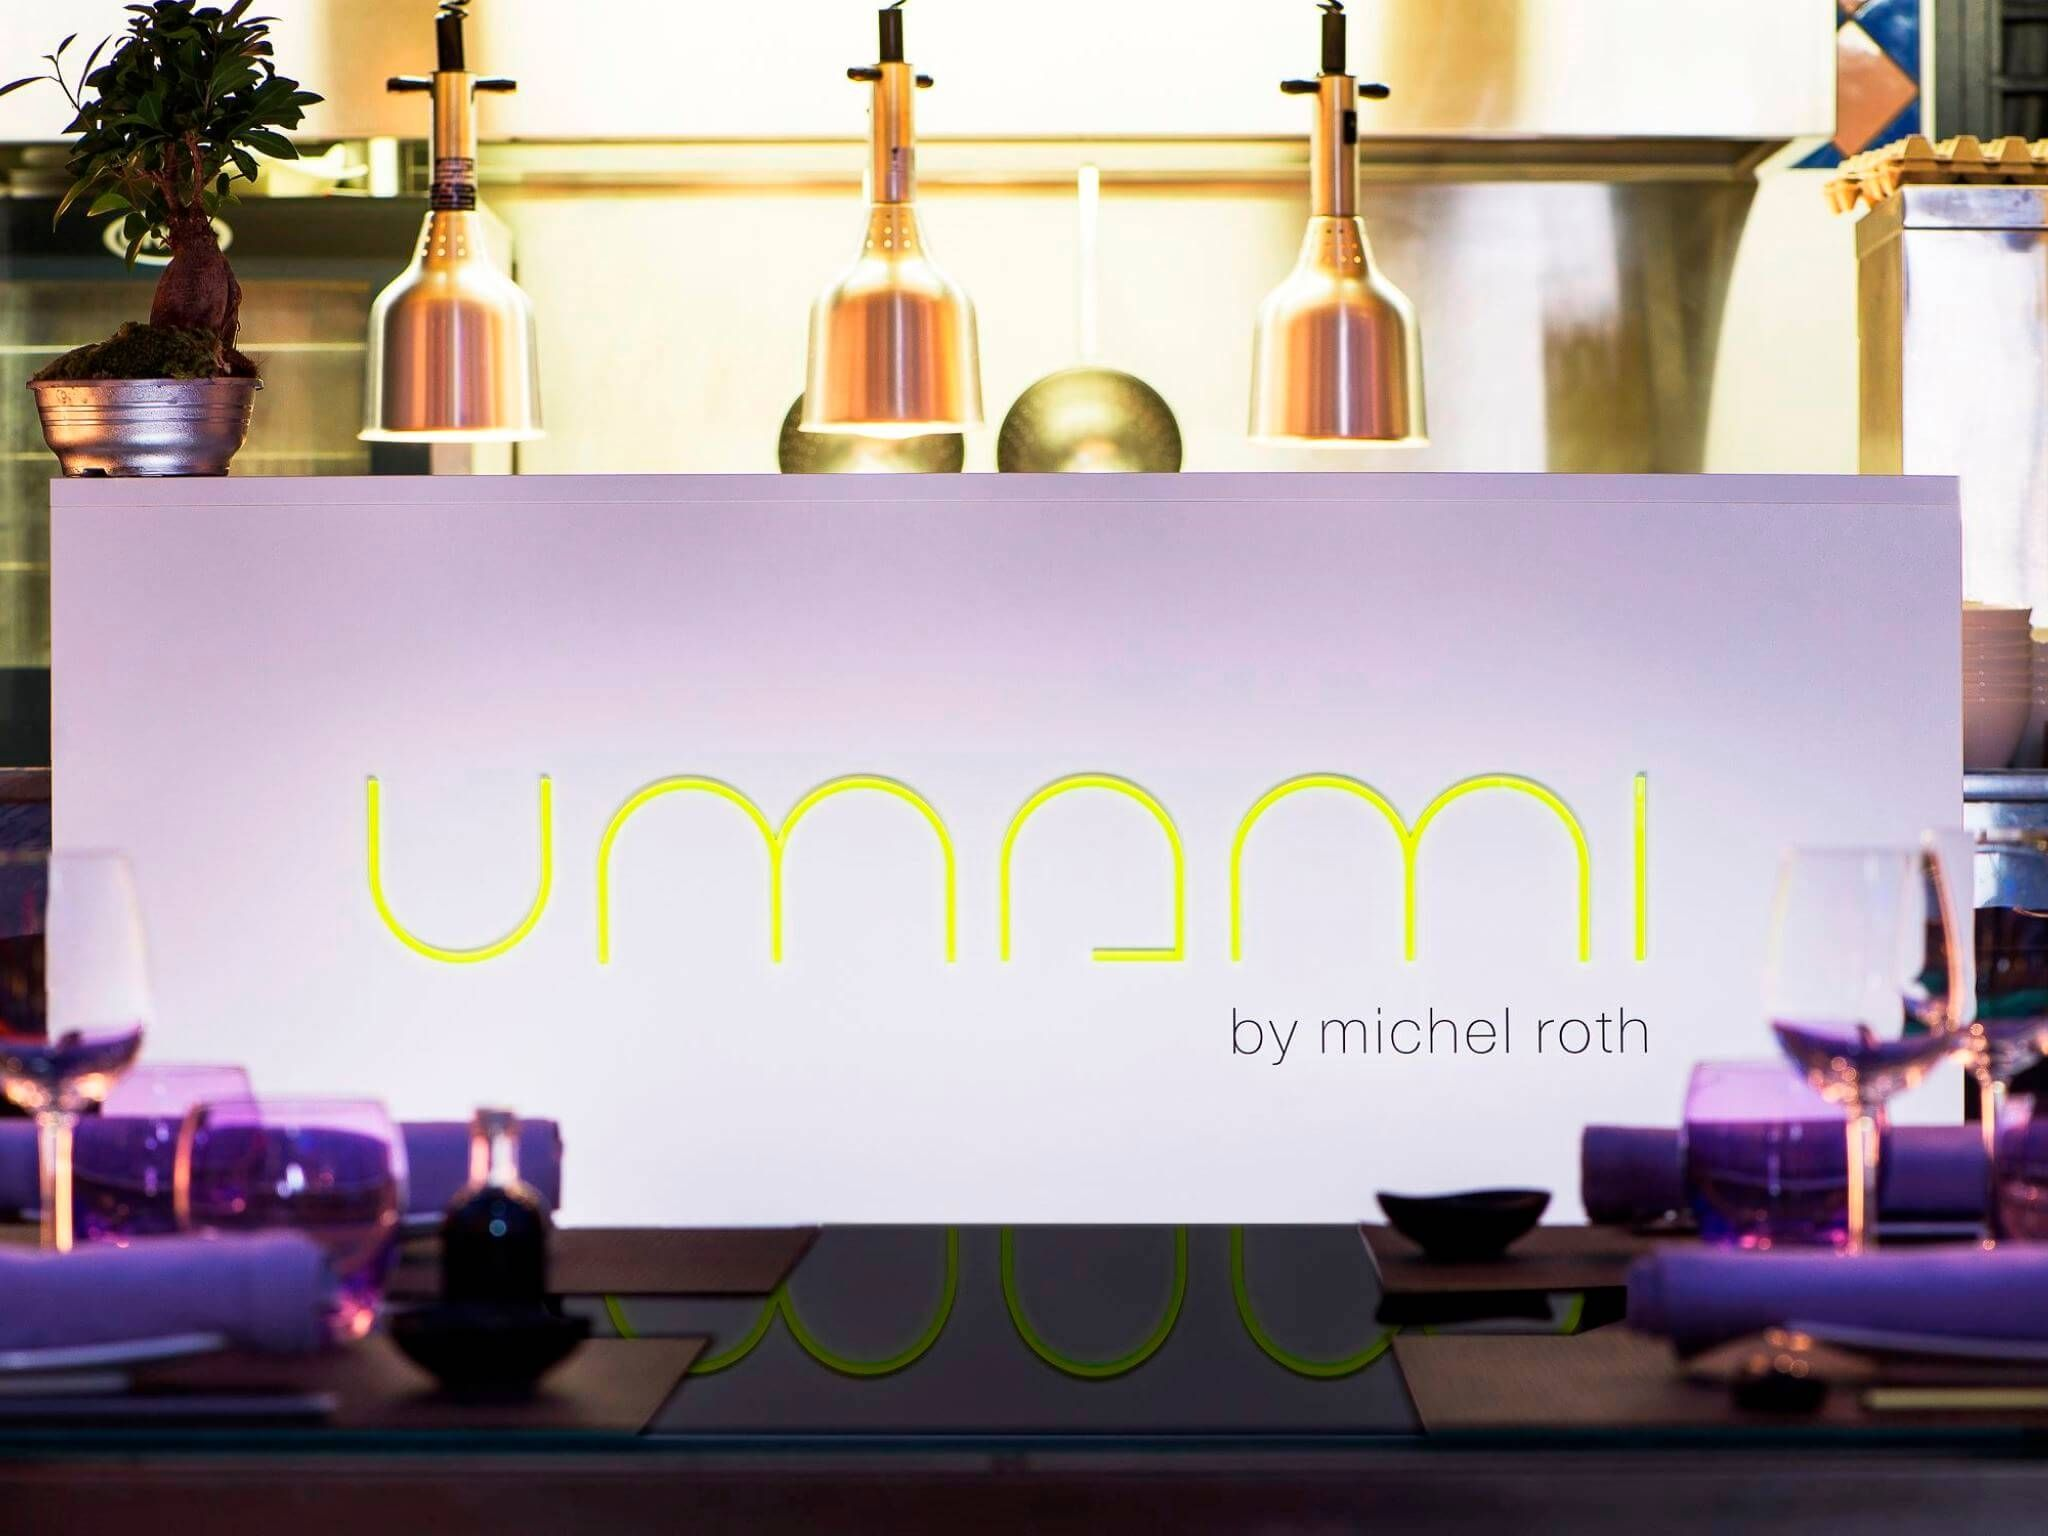 UMAMI by Michel Roth